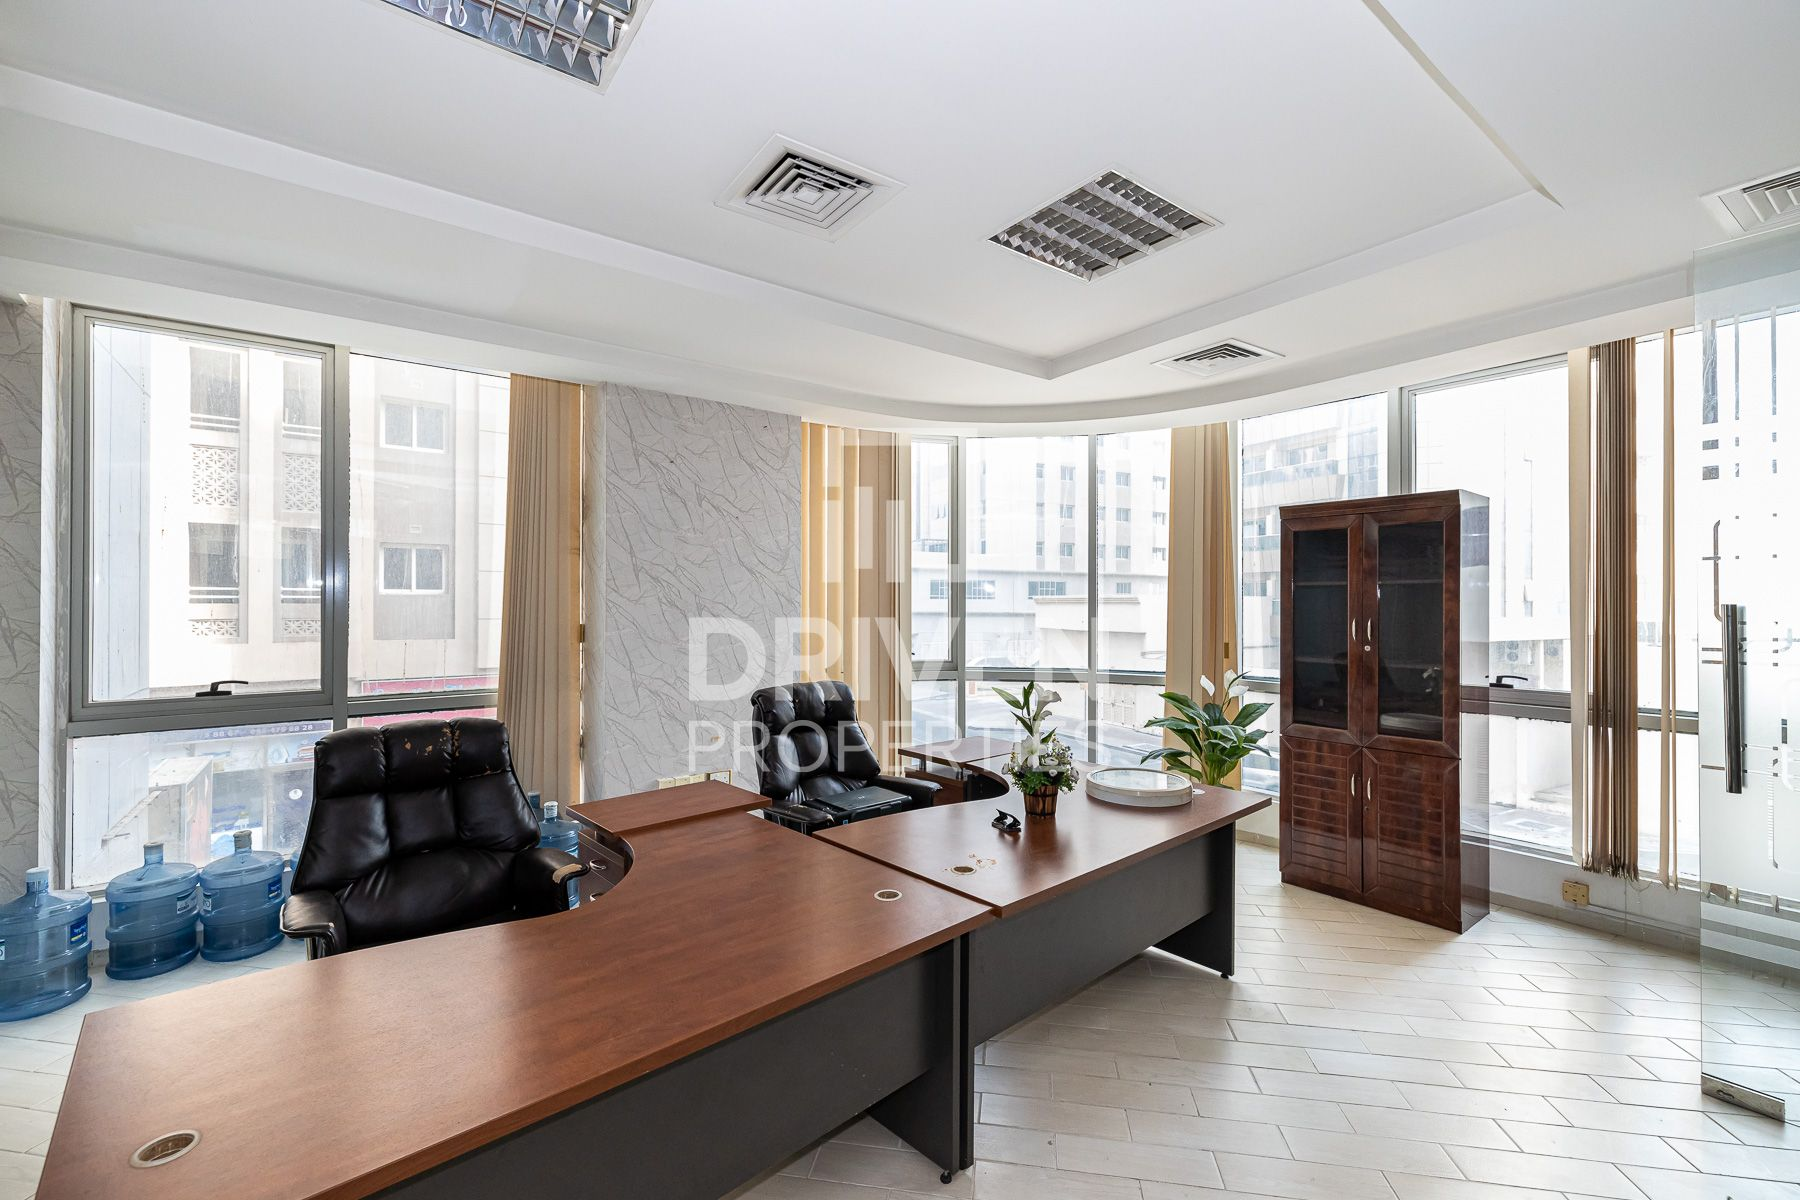 Prime Location   Offices w/ More Options